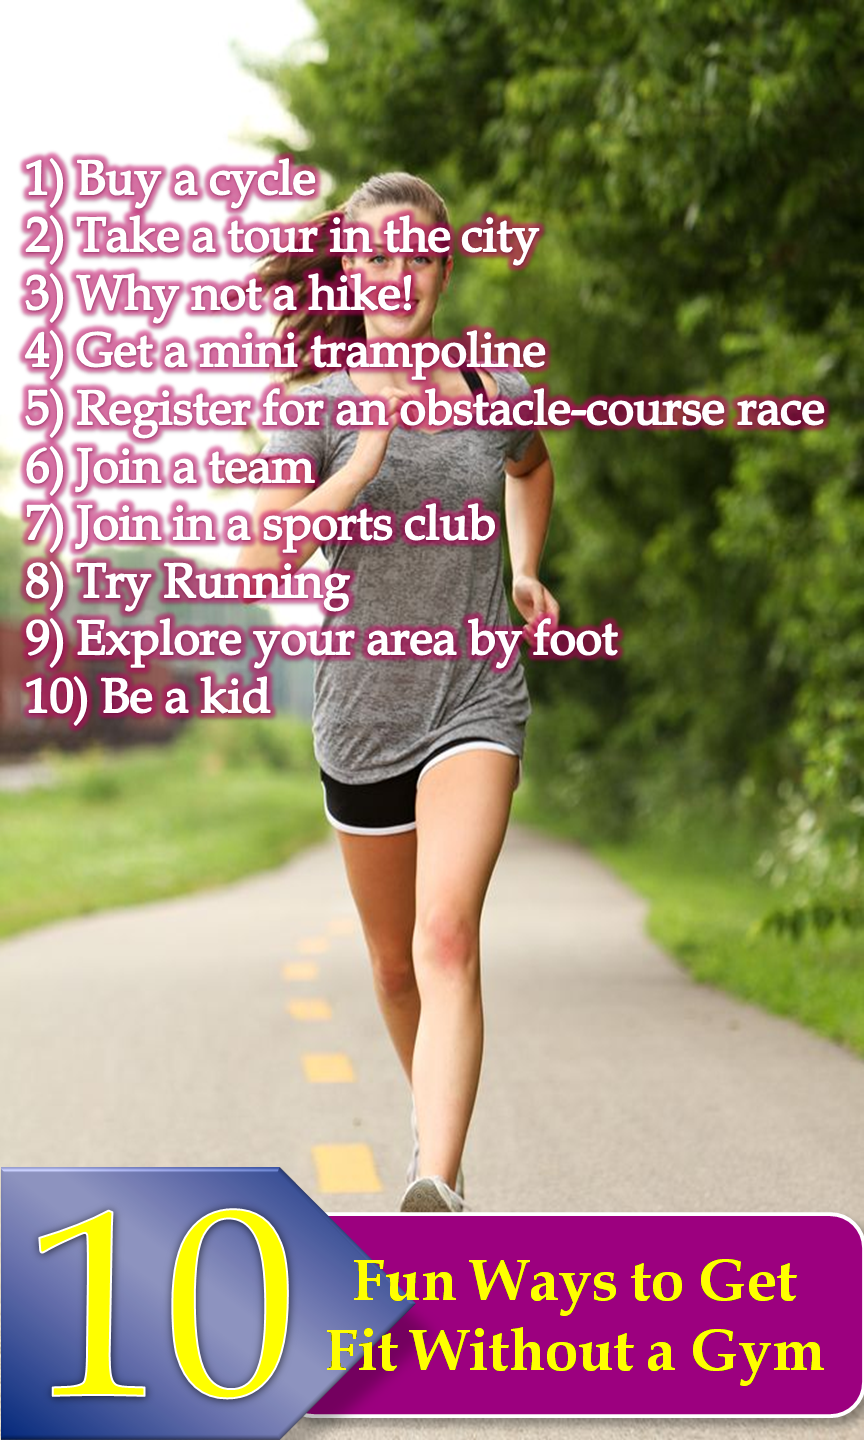 10 Fun Ways to Get Fit With Diabetes